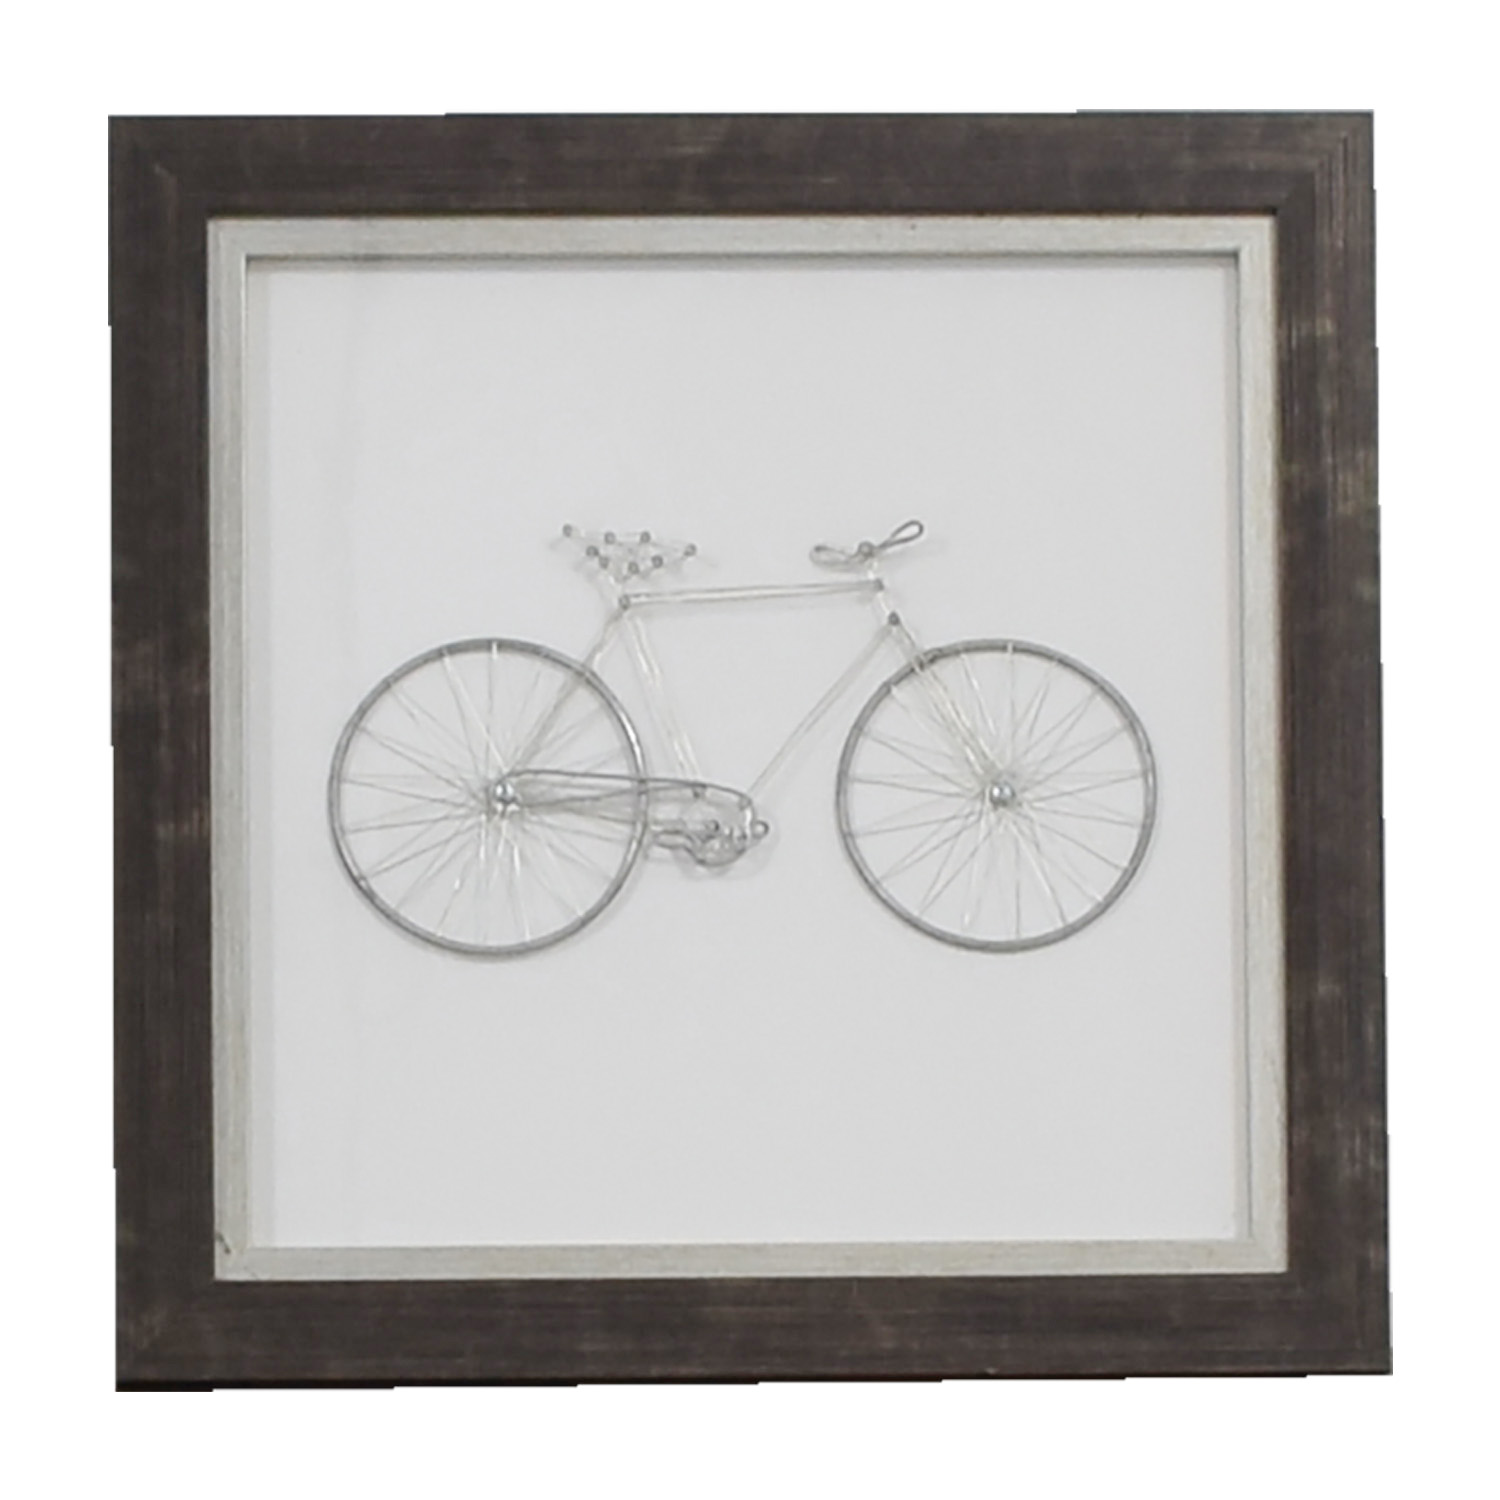 Metal Bicycle Framed Art sale